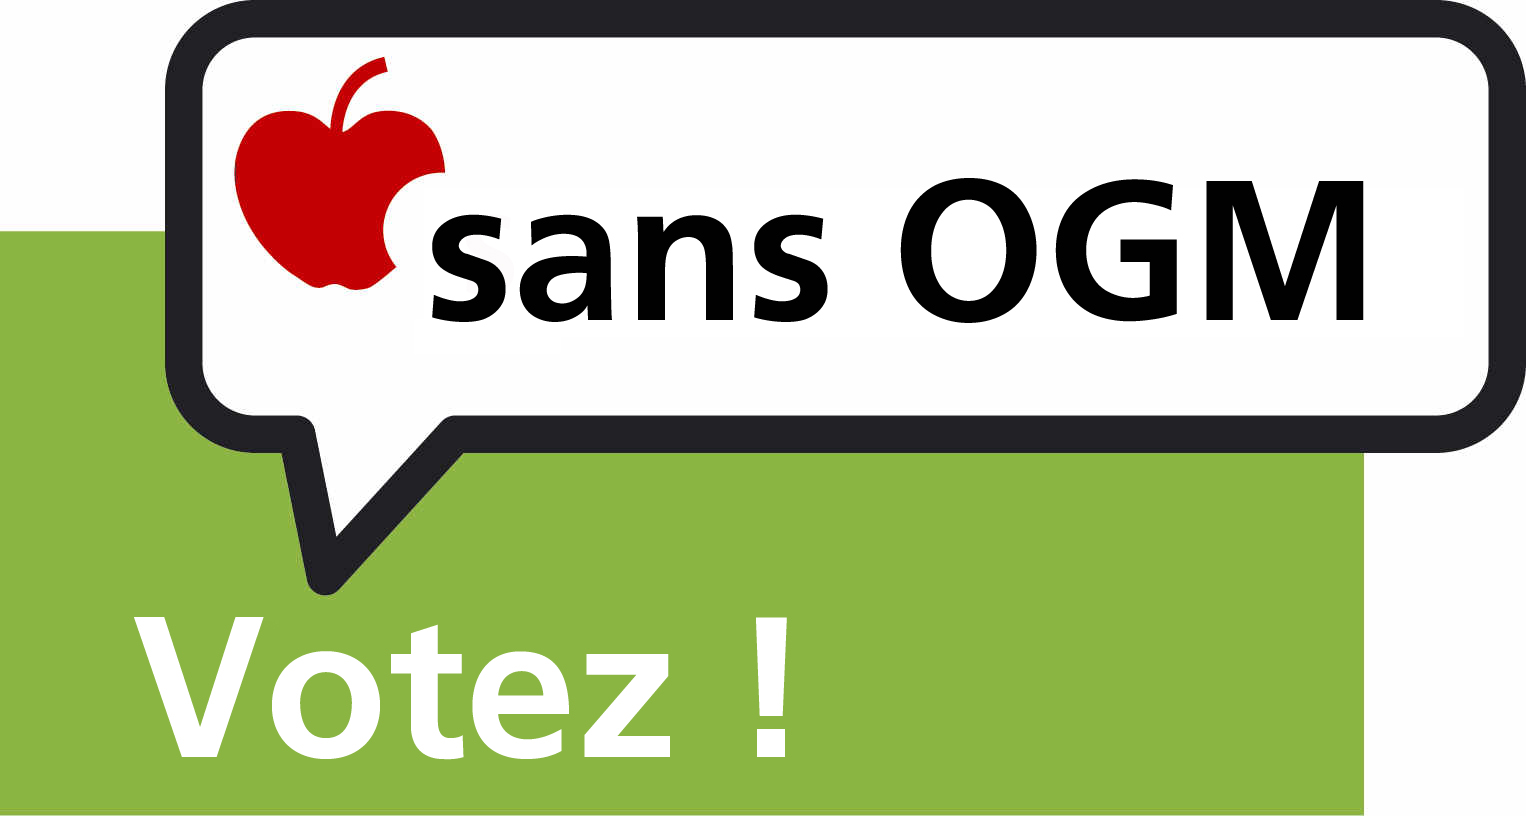 votez sans OGM logo copy